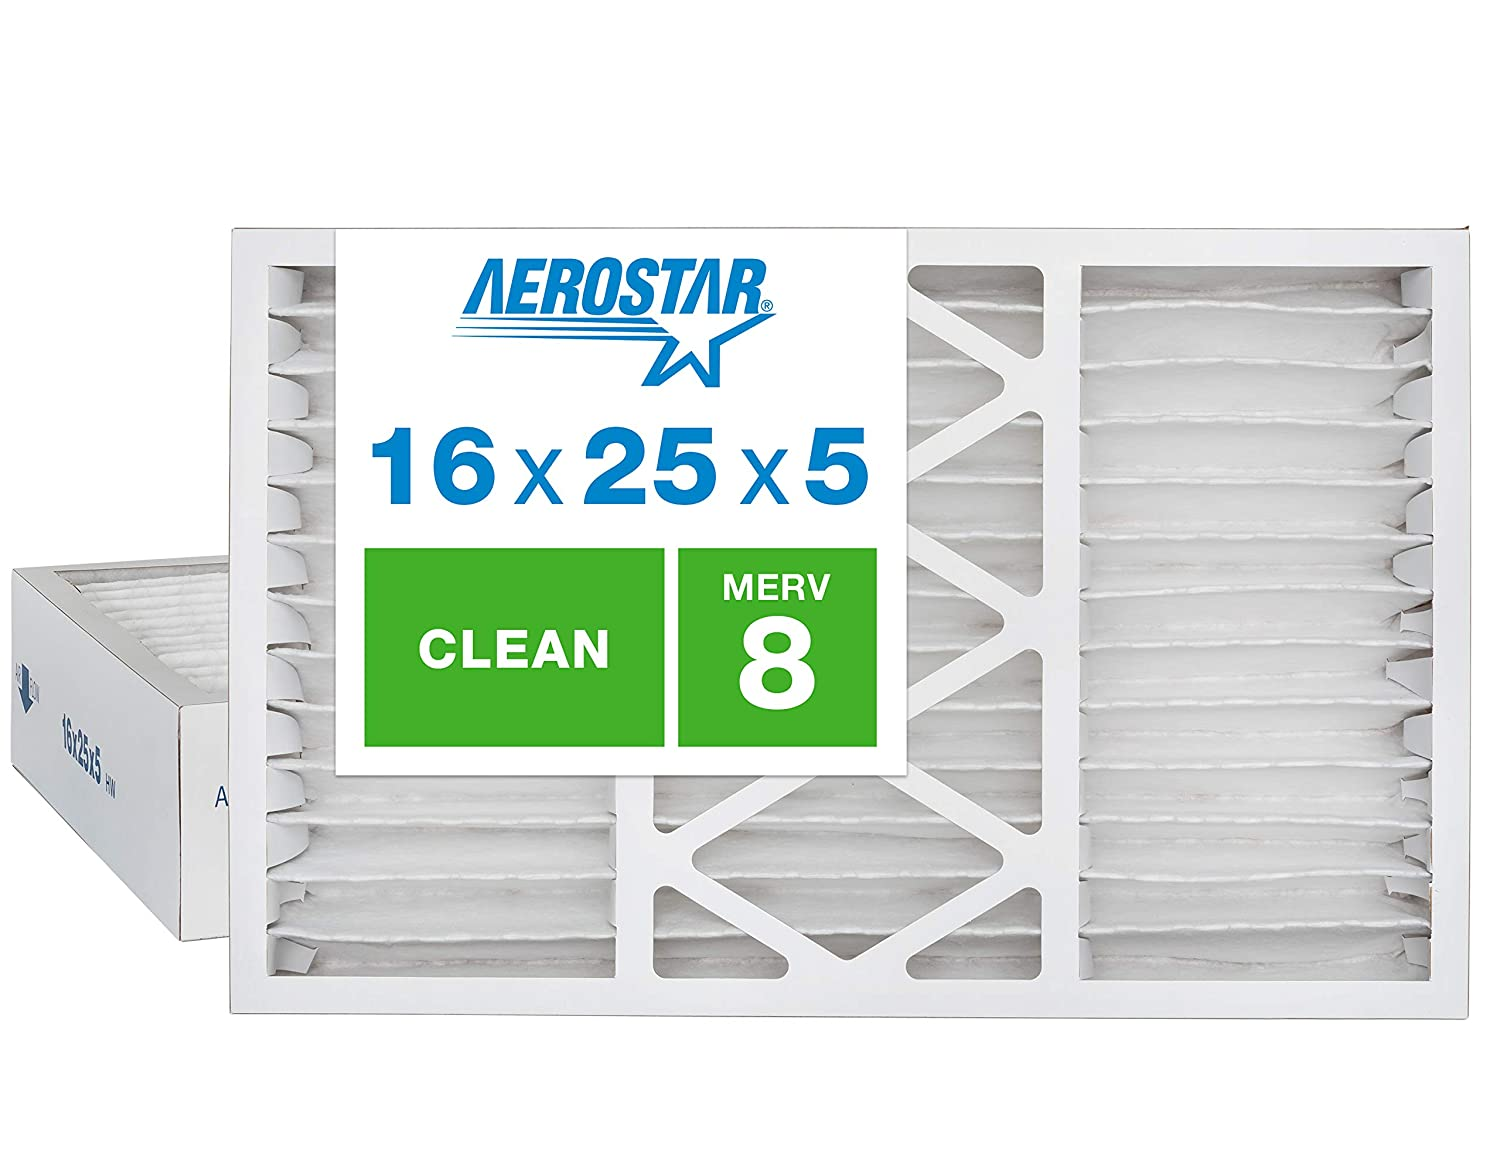 2-Pack,White Actual Size: 15 7//8 x 24 3//4 x 4 3//8 Captures Virus Particles, Aerostar Home Max 16x25x5 MERV 13 Honeywell Replacement Pleated Air Filter Made in the USA